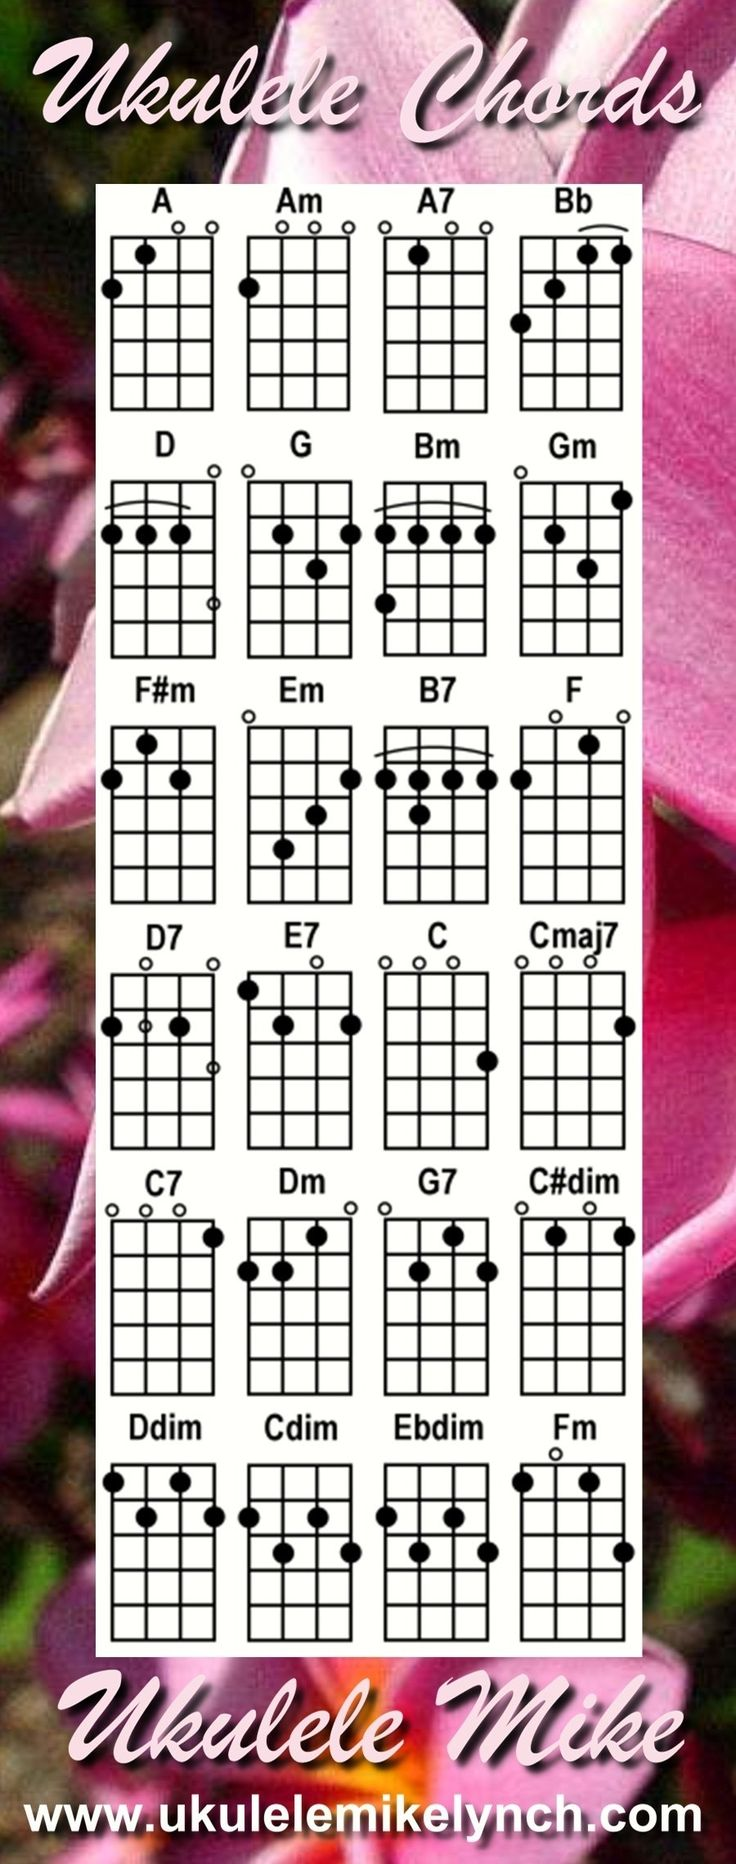 14 best ukulele images on pinterest acoustic guitars classroom ukulele chords had to pin once i saw they were from ukulele mike hexwebz Choice Image